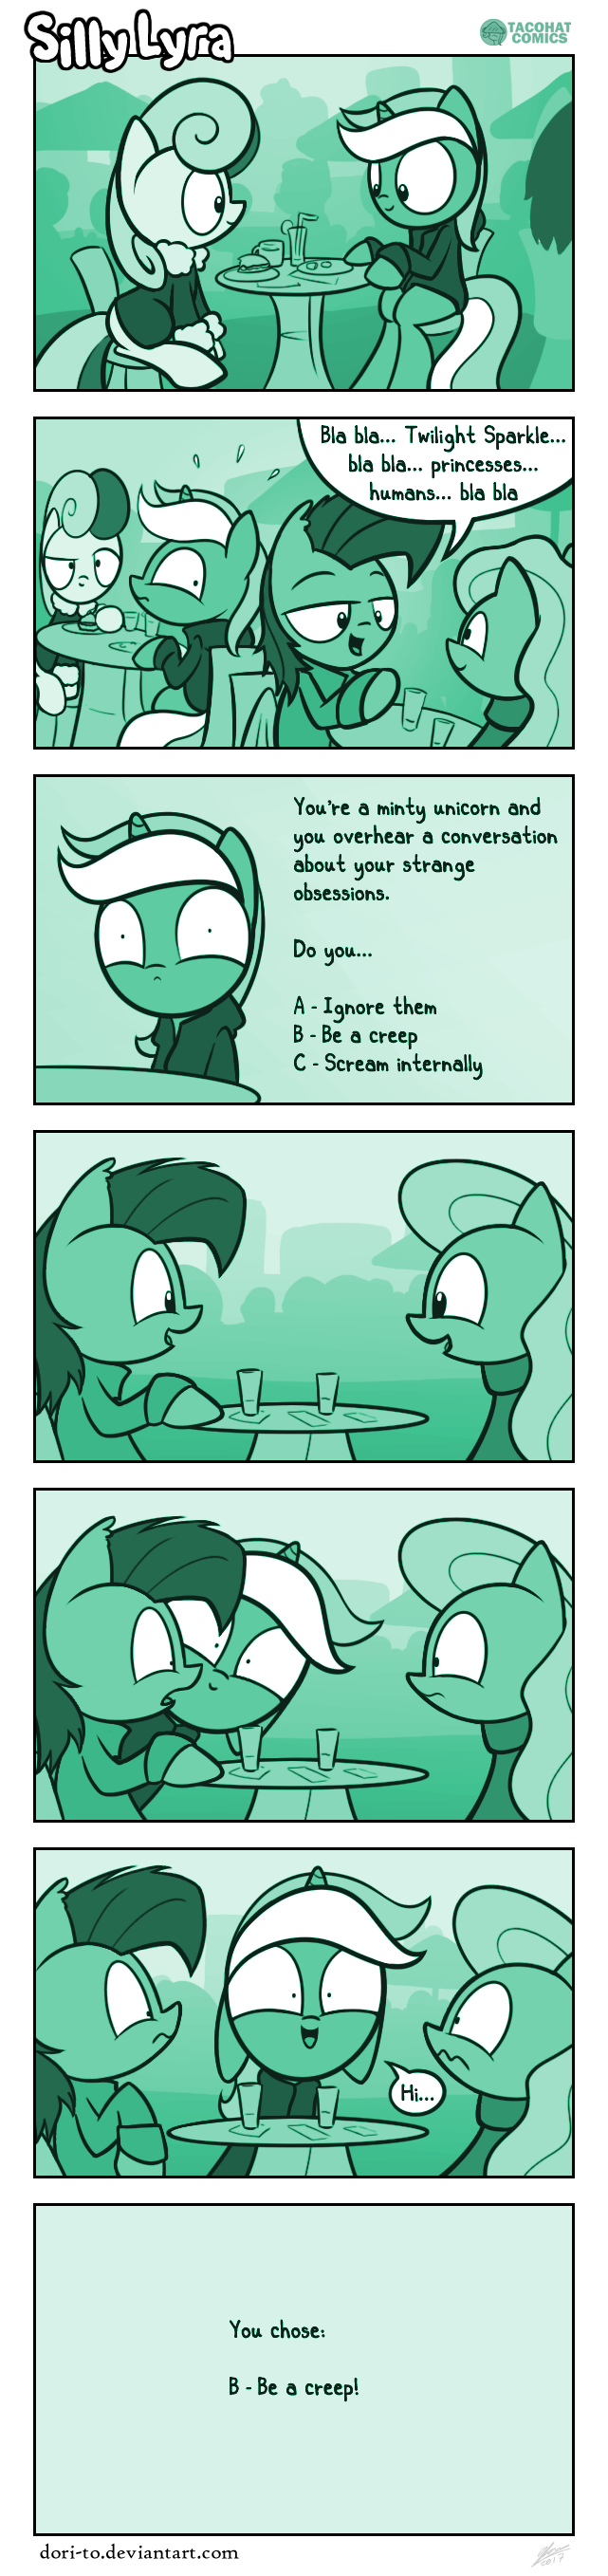 Silly Lyra - Cafe Conundrum by Dori-to